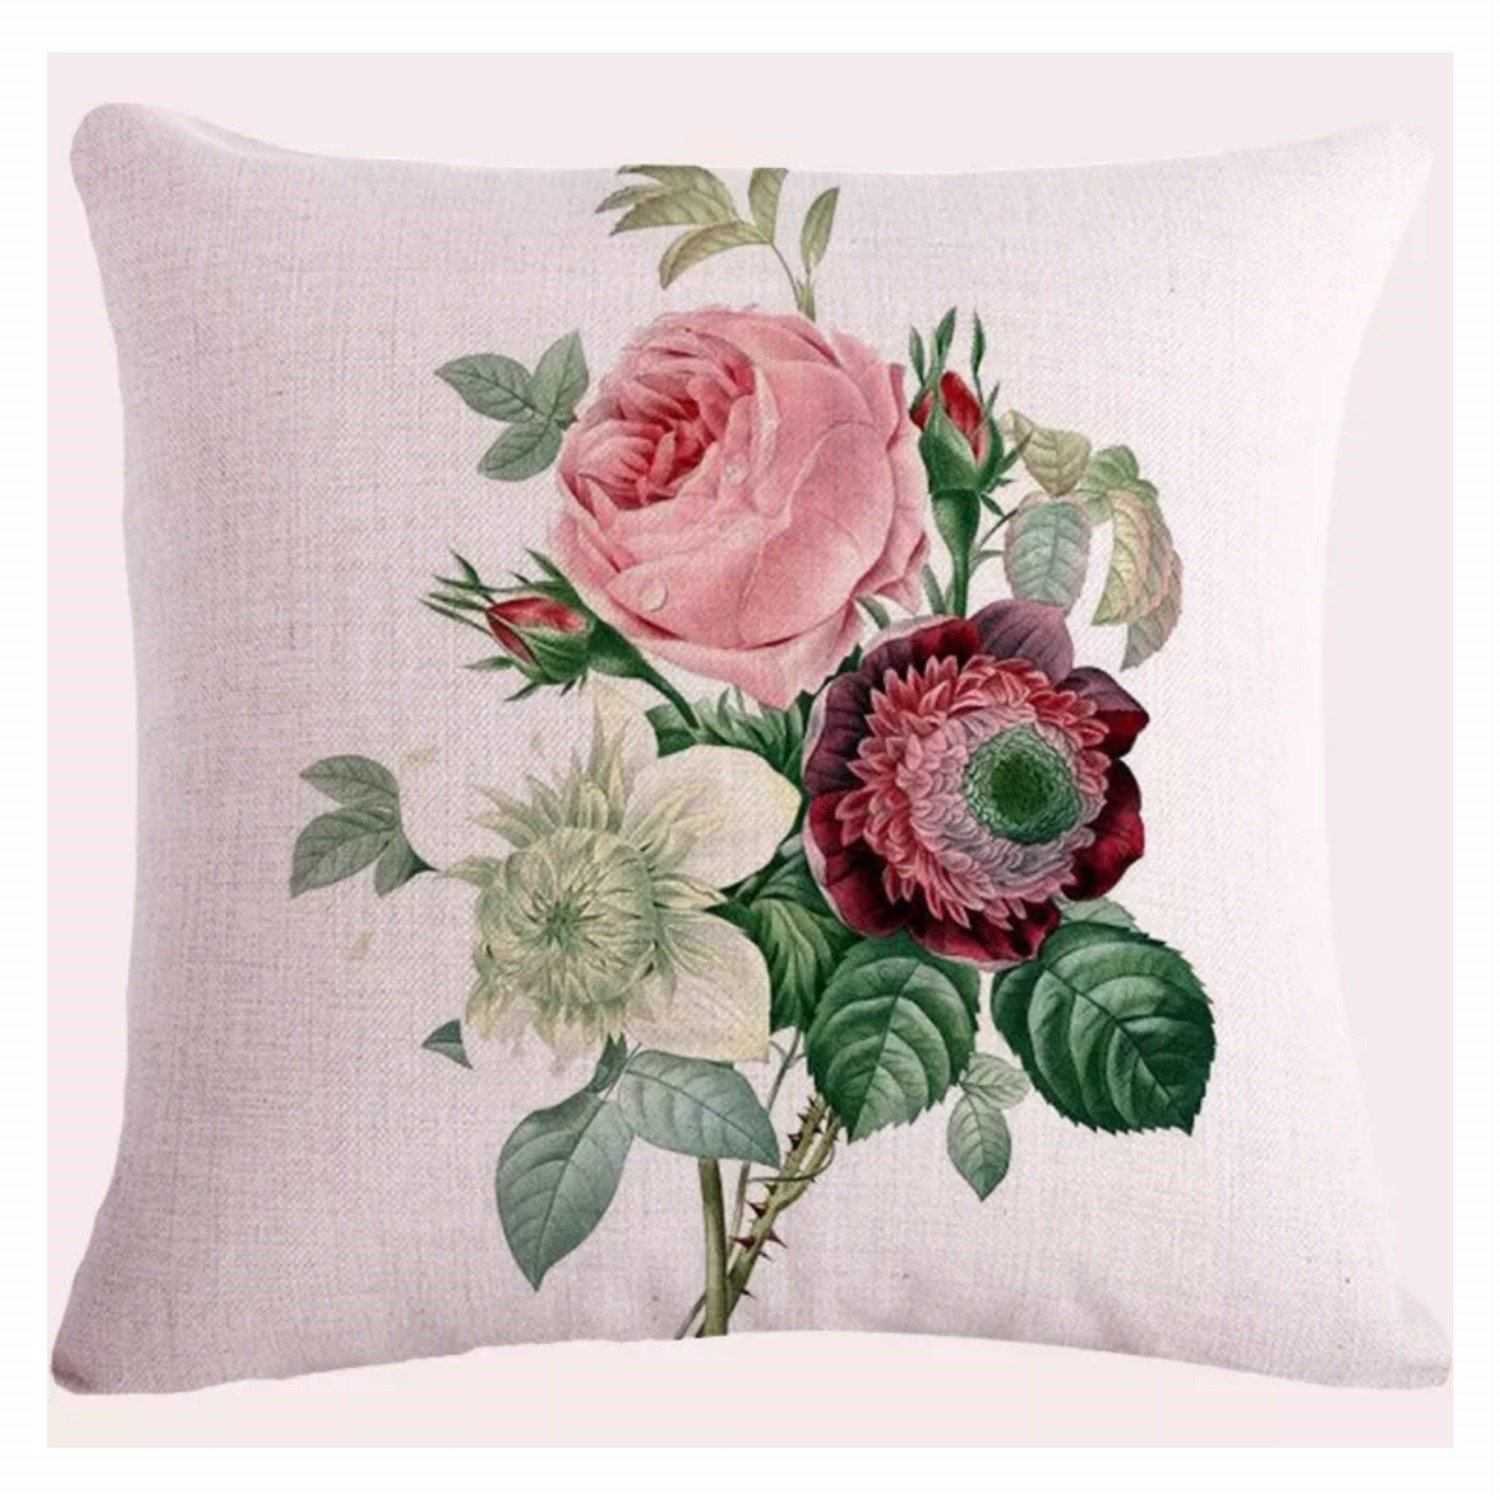 Cushion Pillow Rose & Flowers Beautiful Cushions, Decorative Pillows The Renmy Store